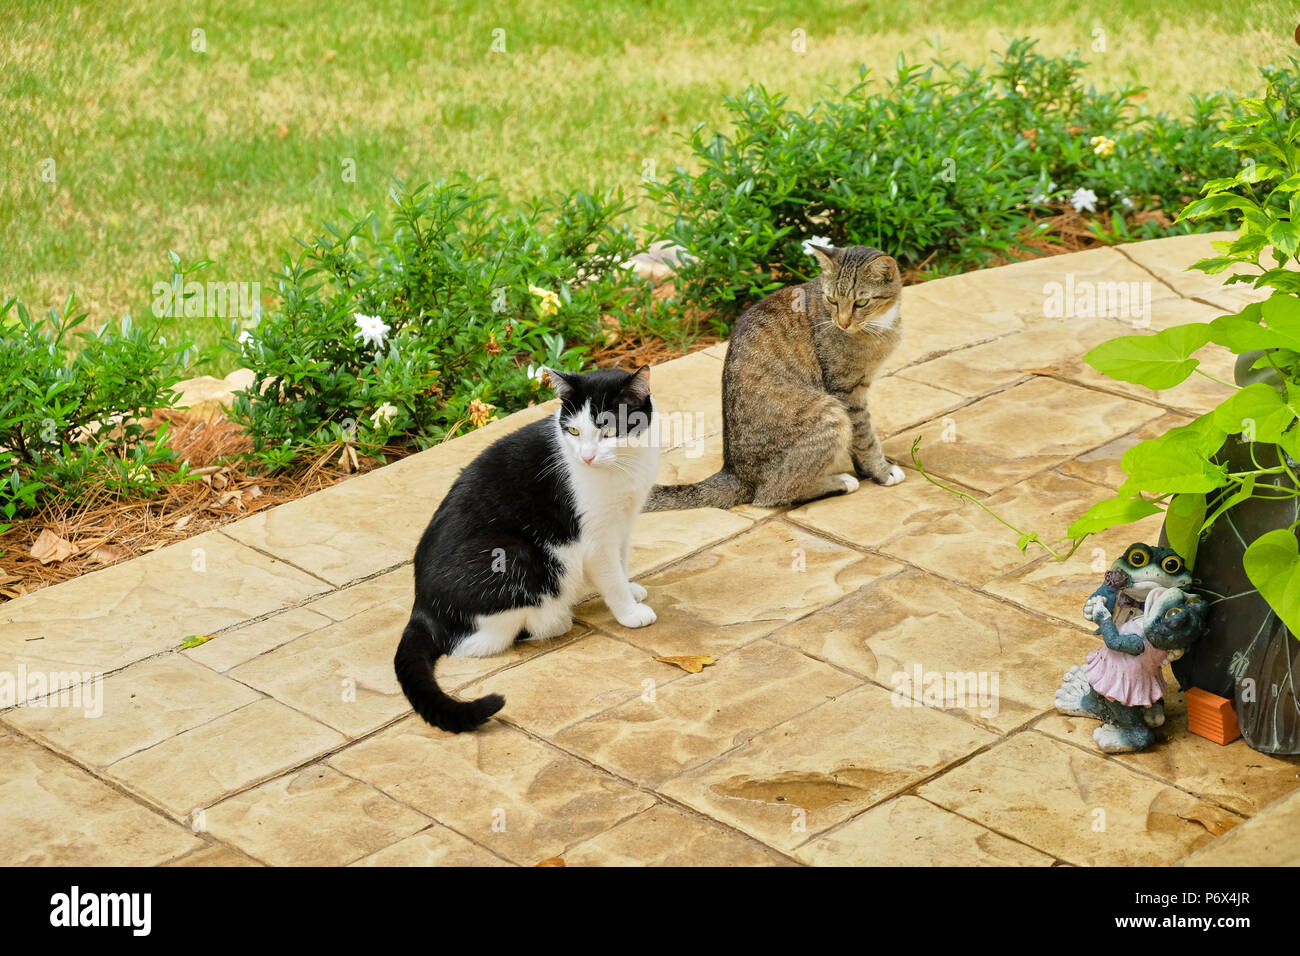 Grey tiger stripe domestic short hair tabby cat and a black and white tuxedo cat outdoors standing on a garden patio. Stock Photo